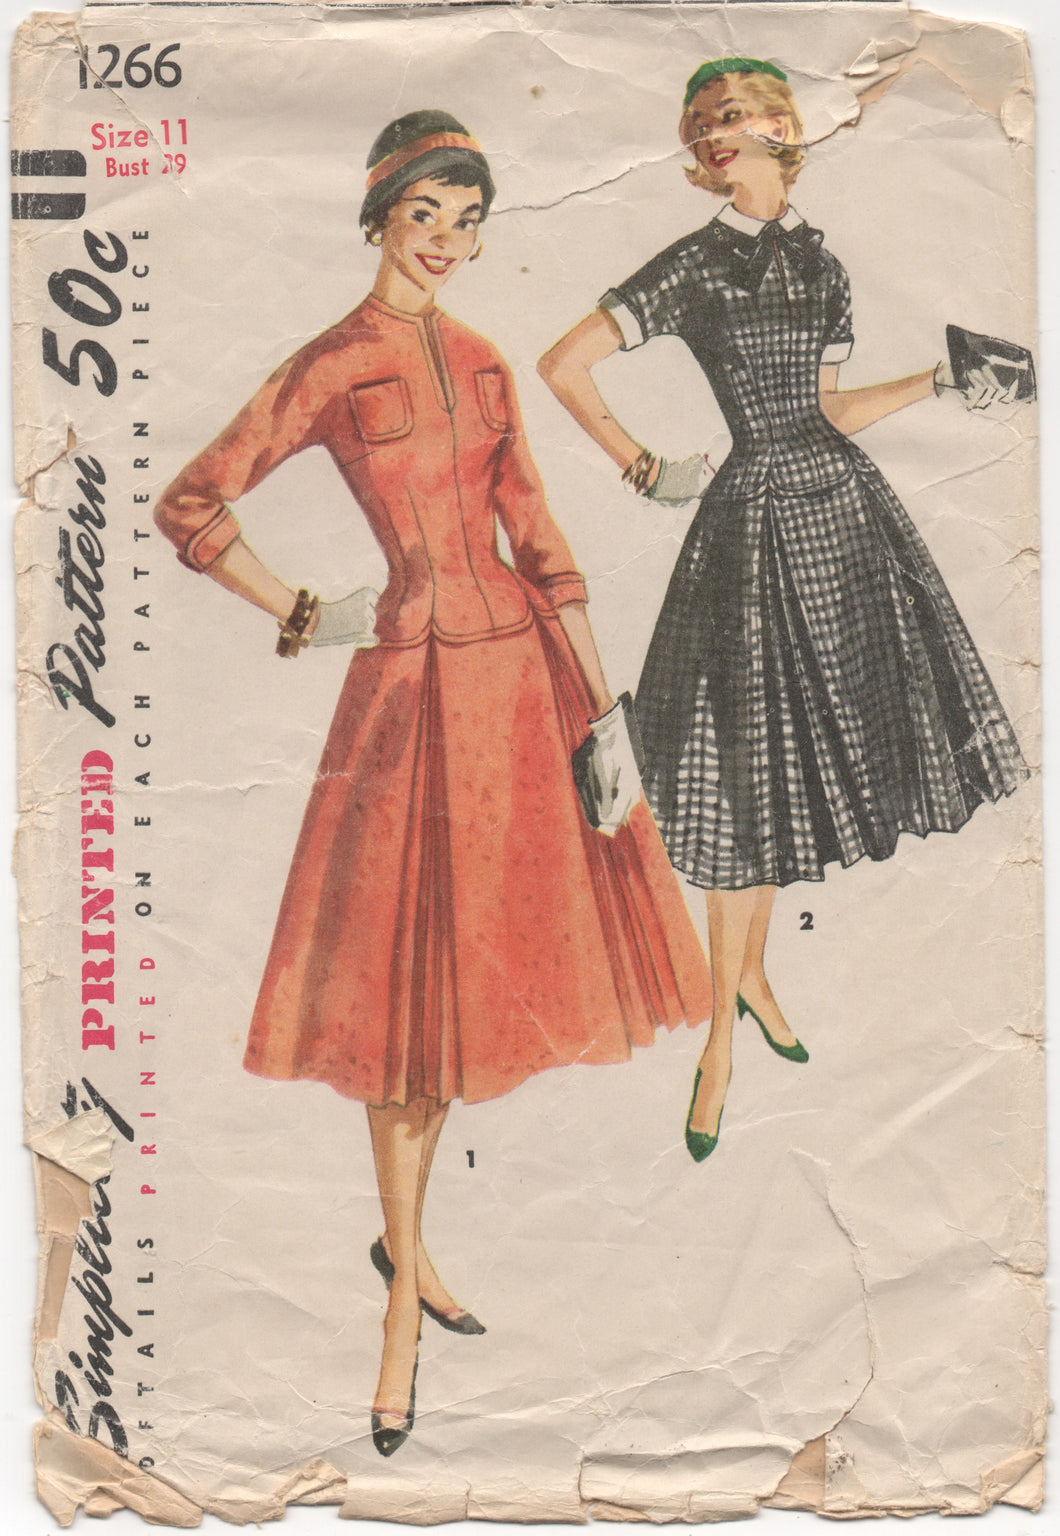 1950's Simplicity One-Piece Dress with Drop Waist and Full Skirt with Double Inverted Pleats - Bust 29